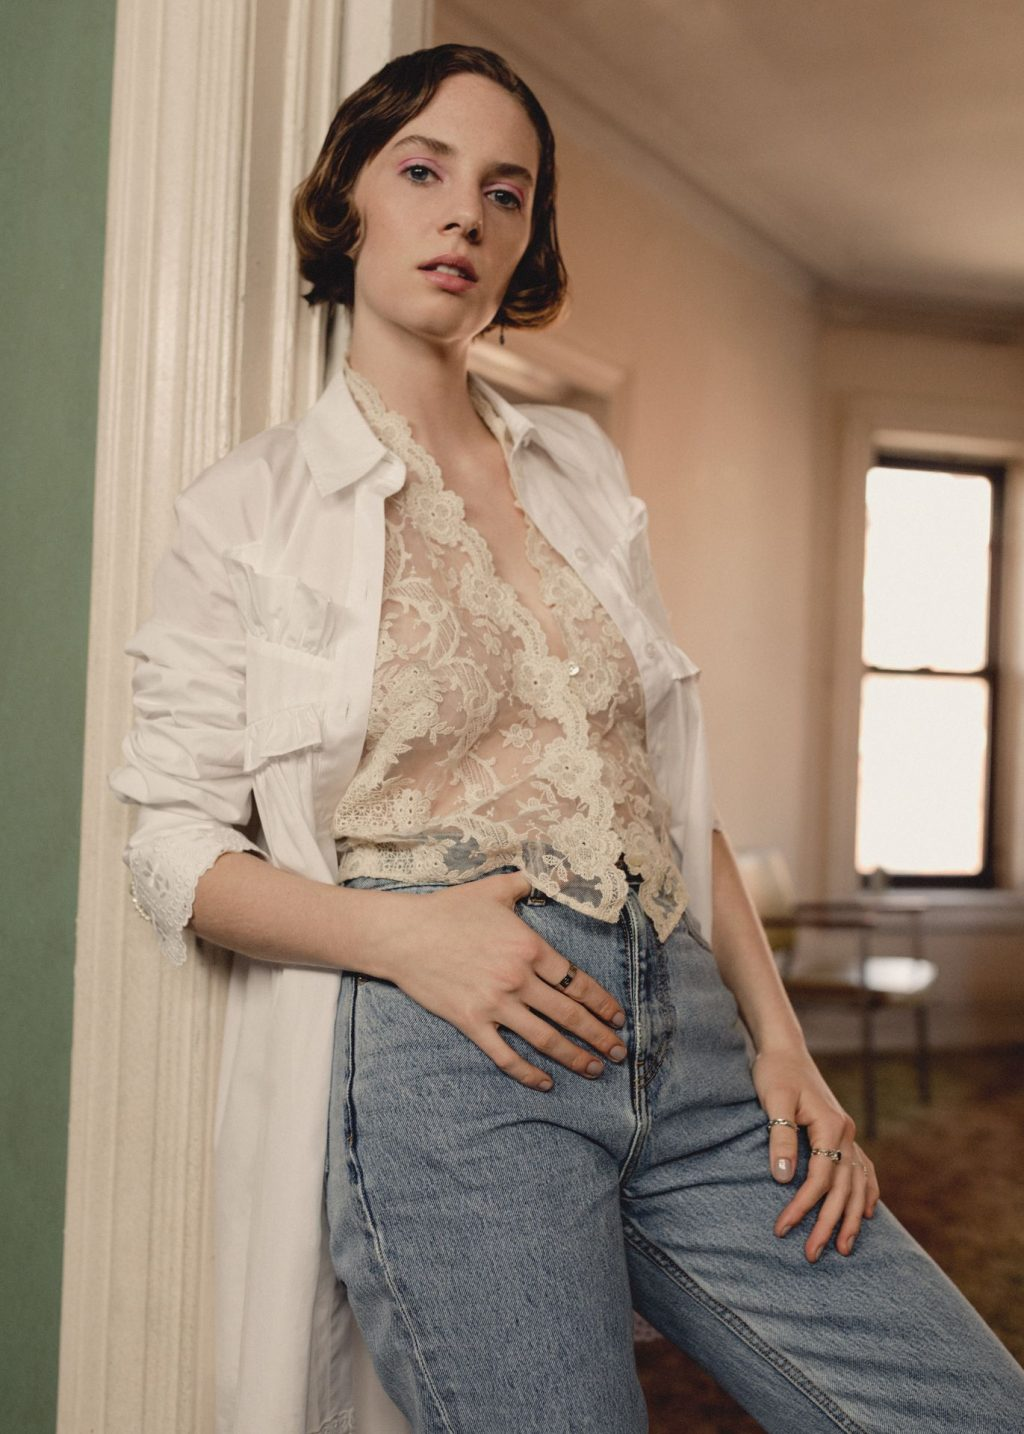 Maya Hawke See Through & Sexy – Nylon (8 Photos)